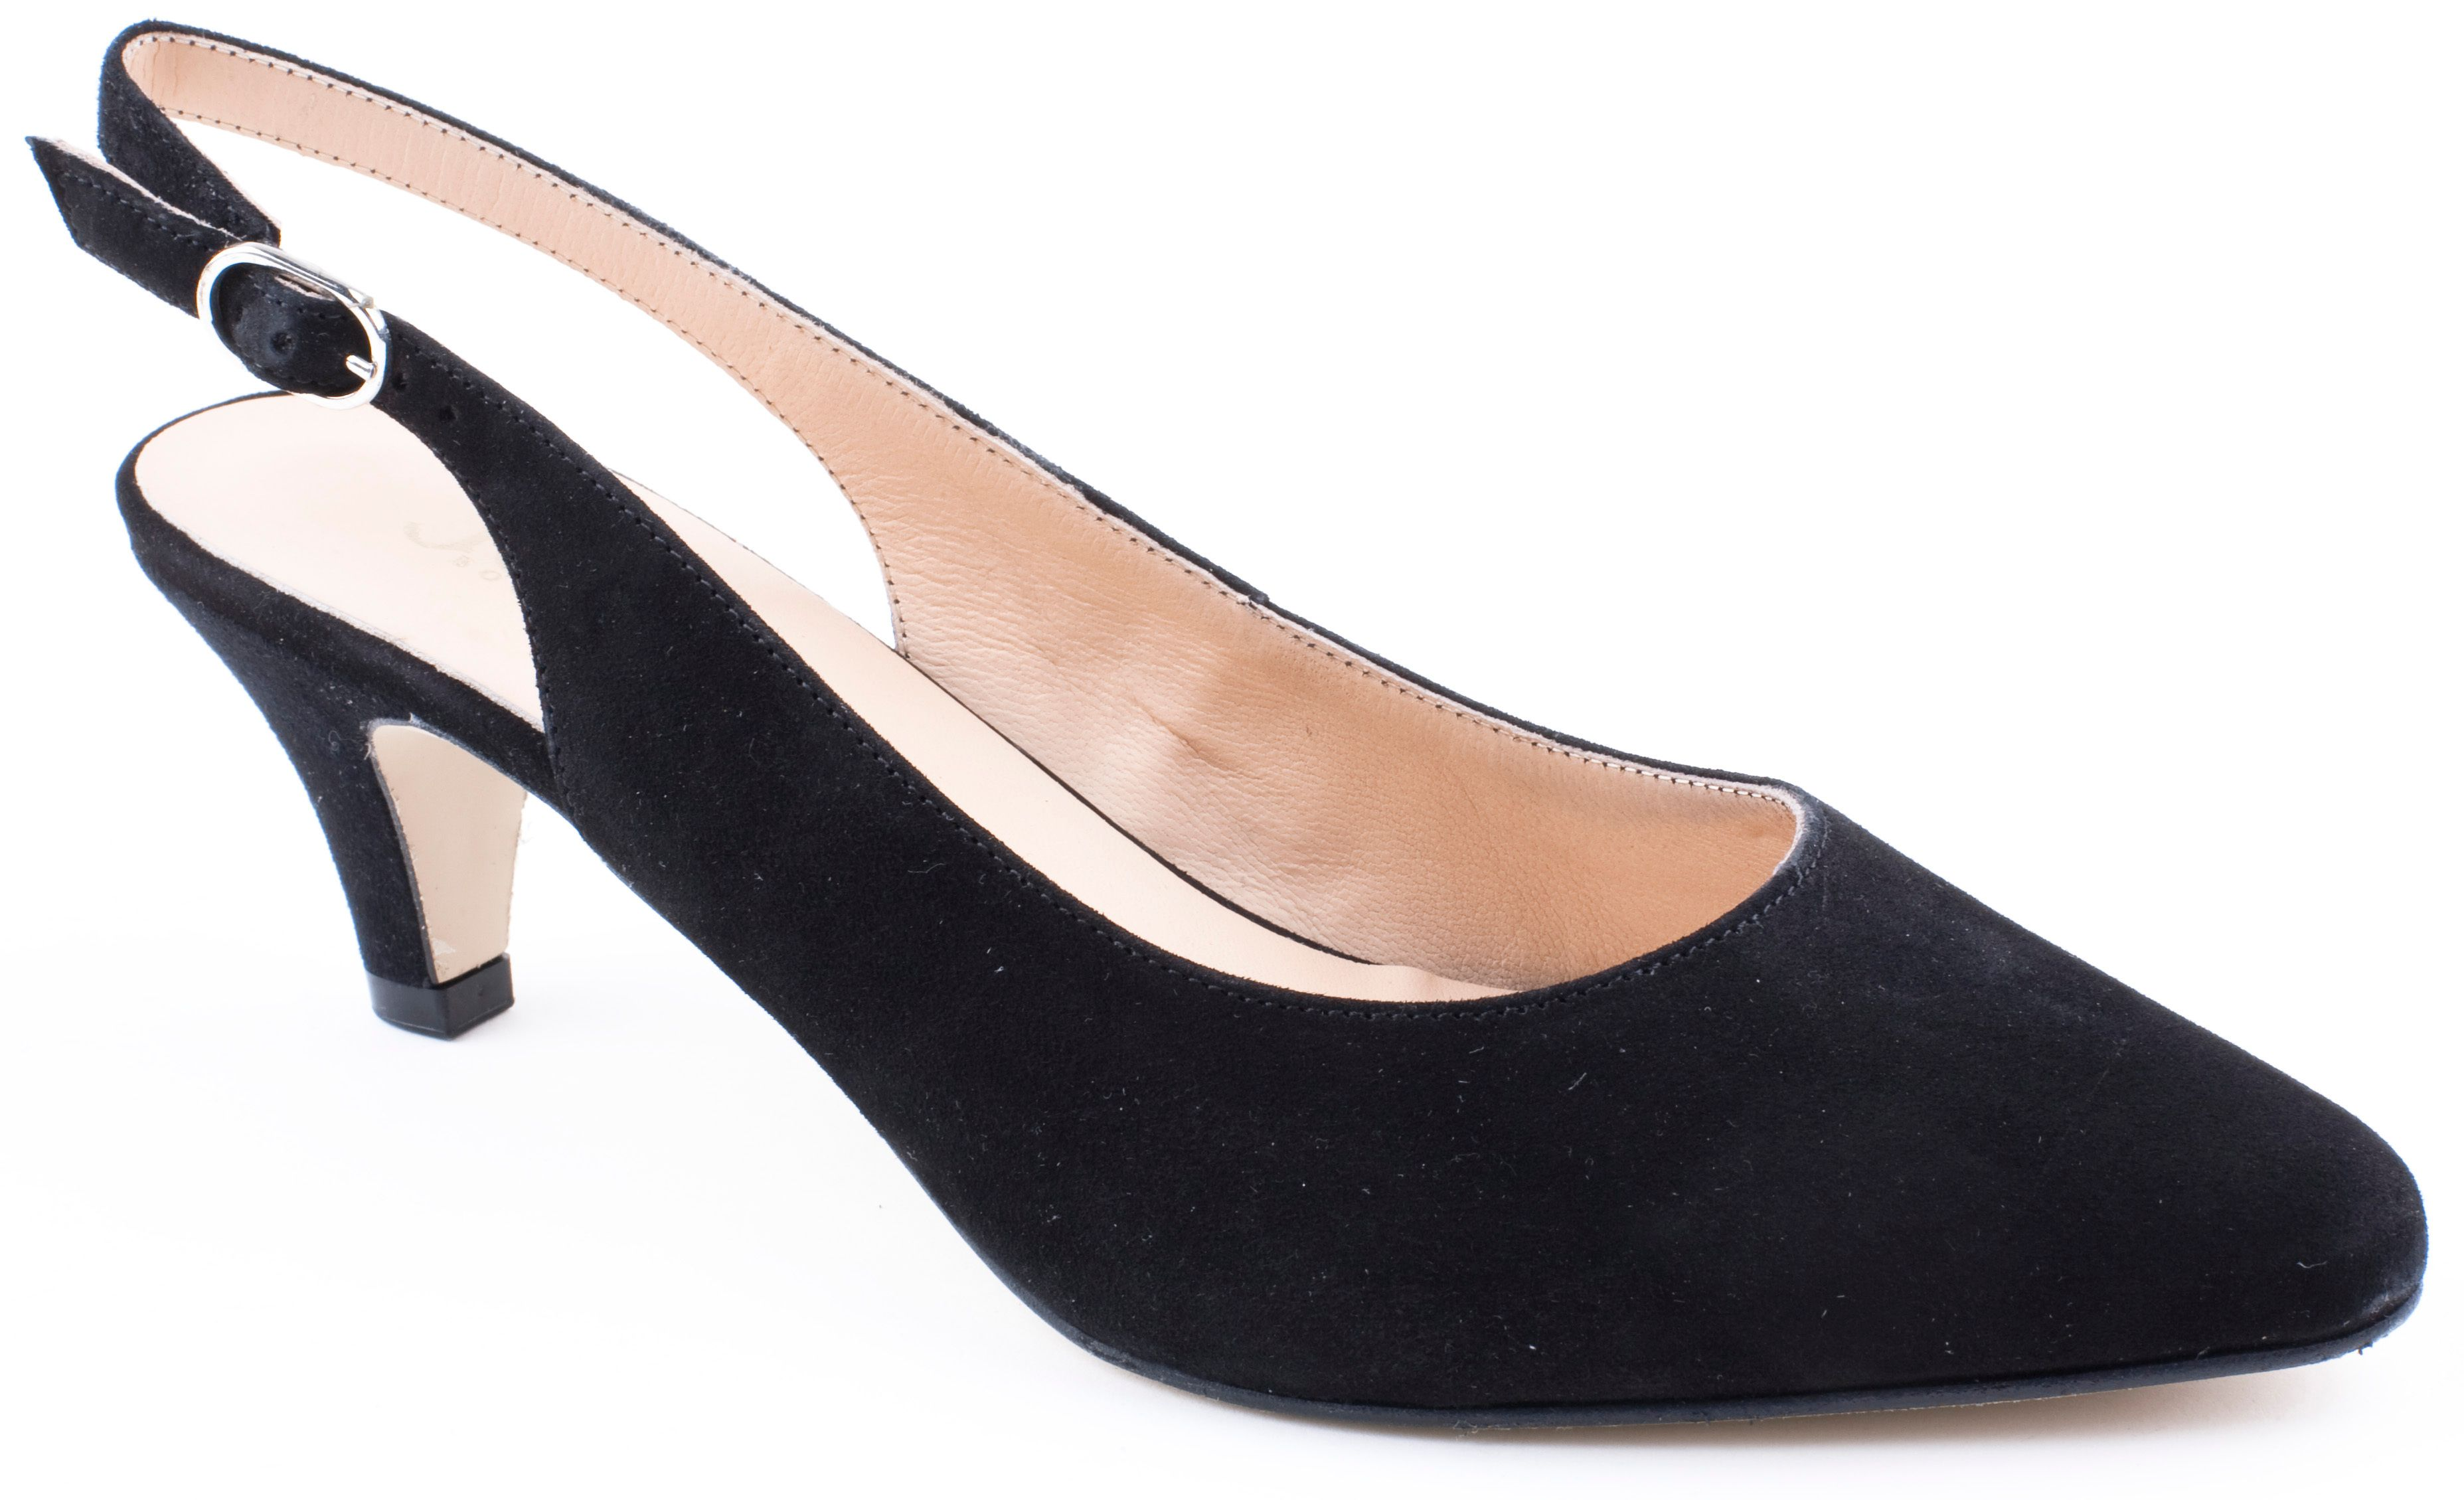 Bamba slingback heeled shoes